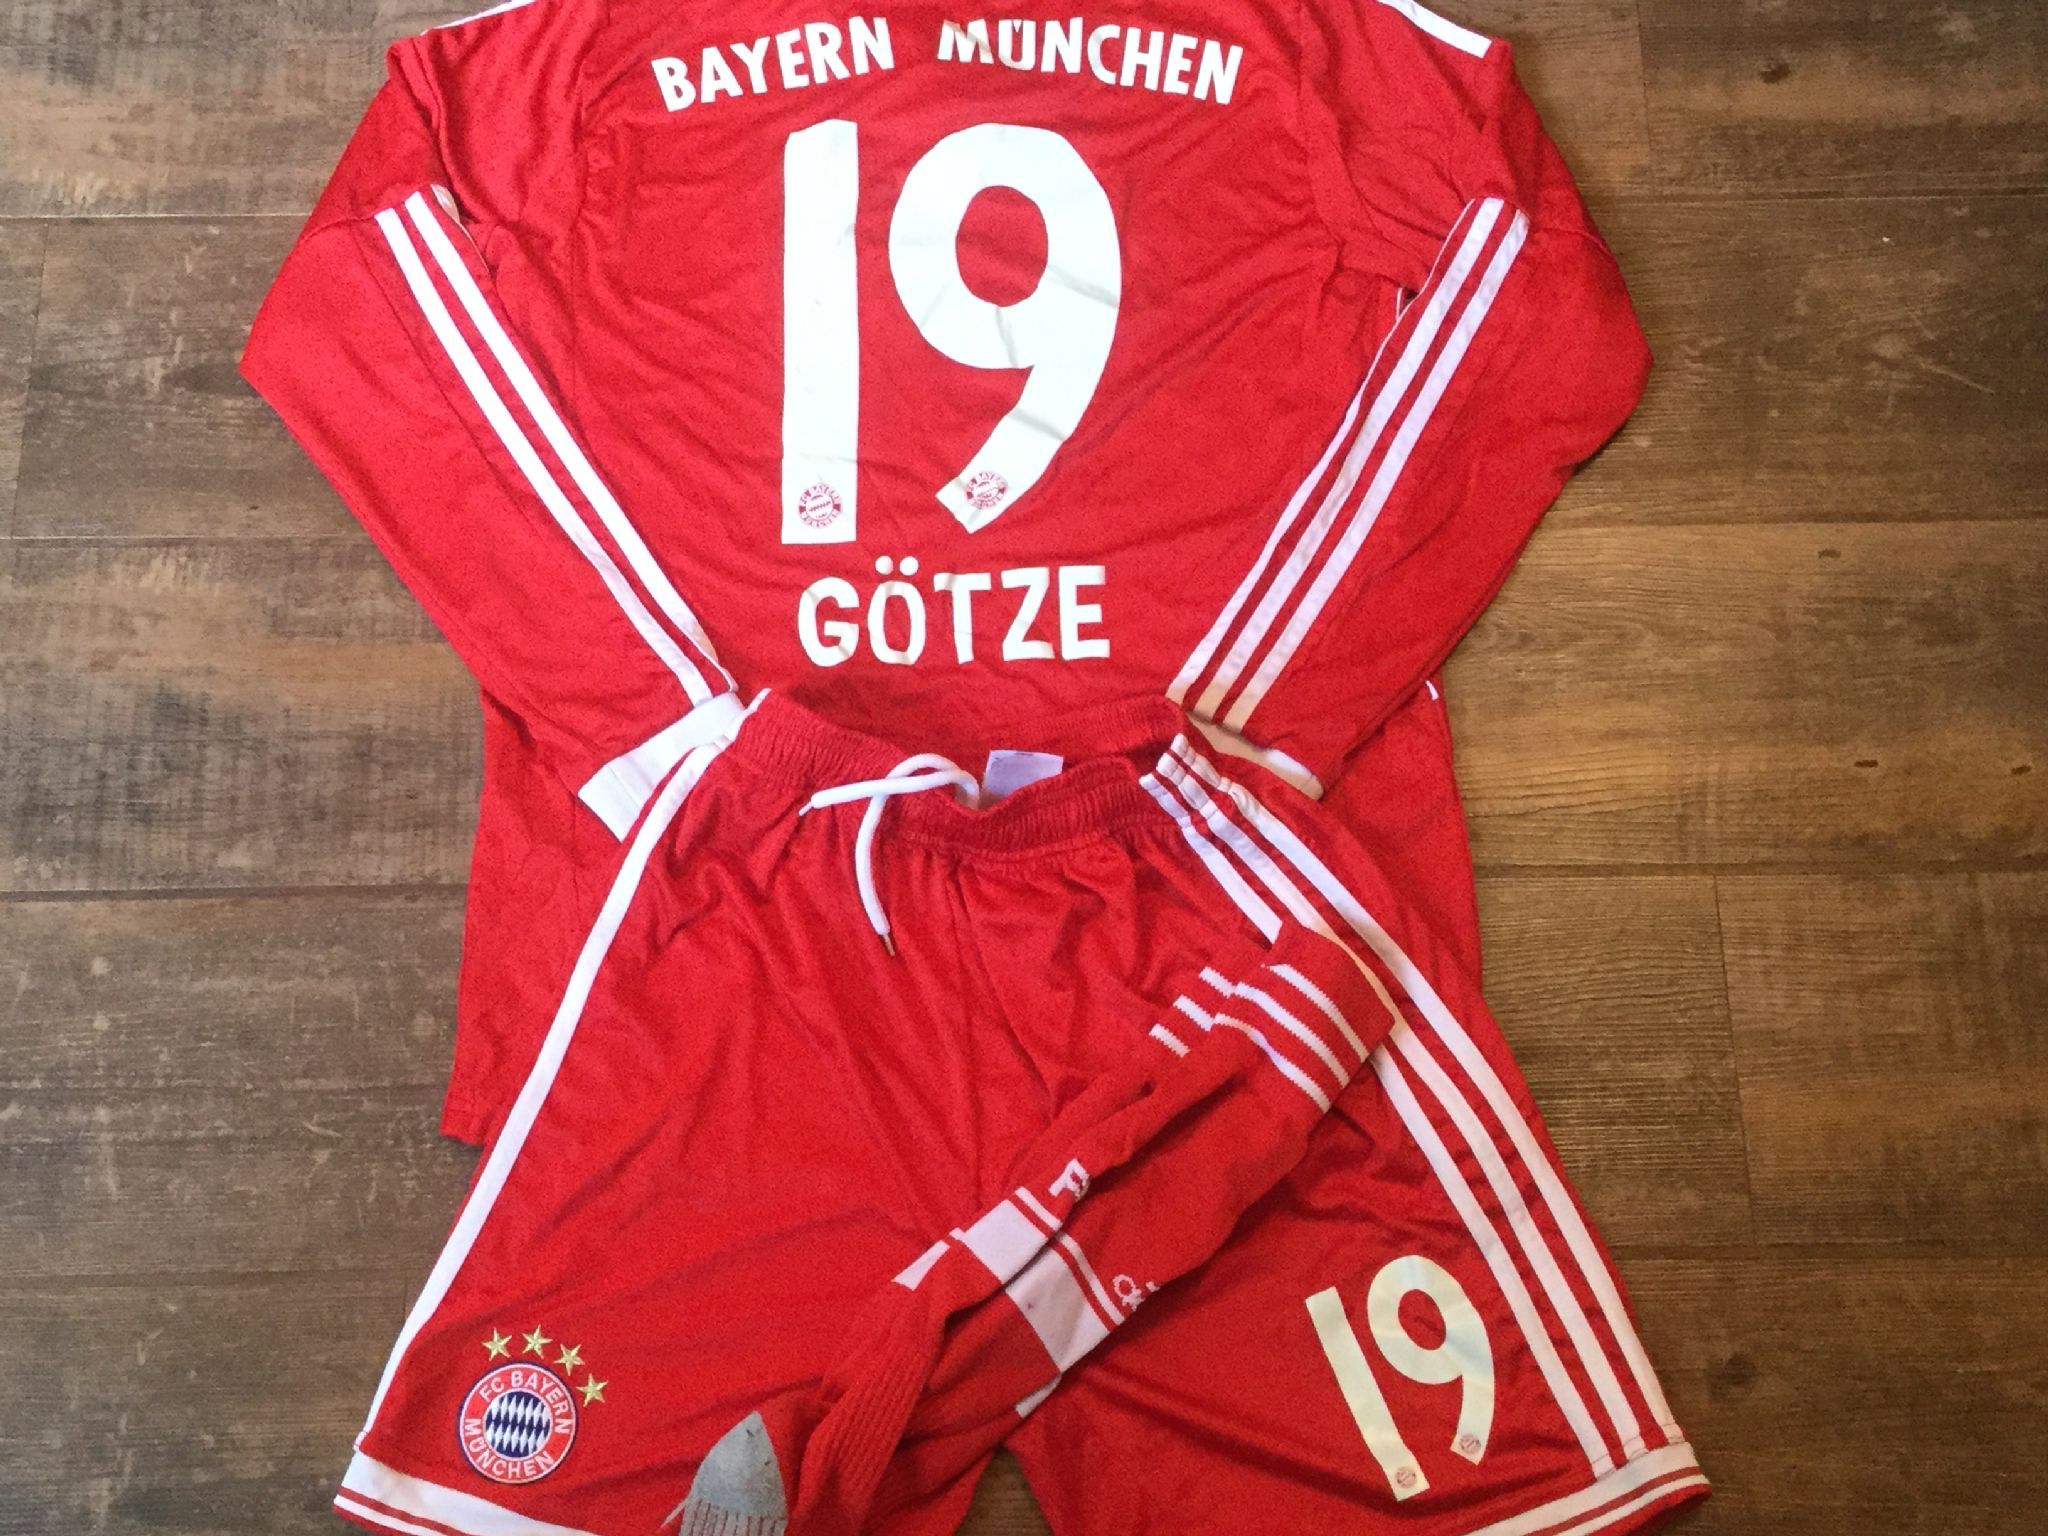 meet 0aed1 0243c Global Classic Football Shirts | 2013 Bayern Munich Vintage ...